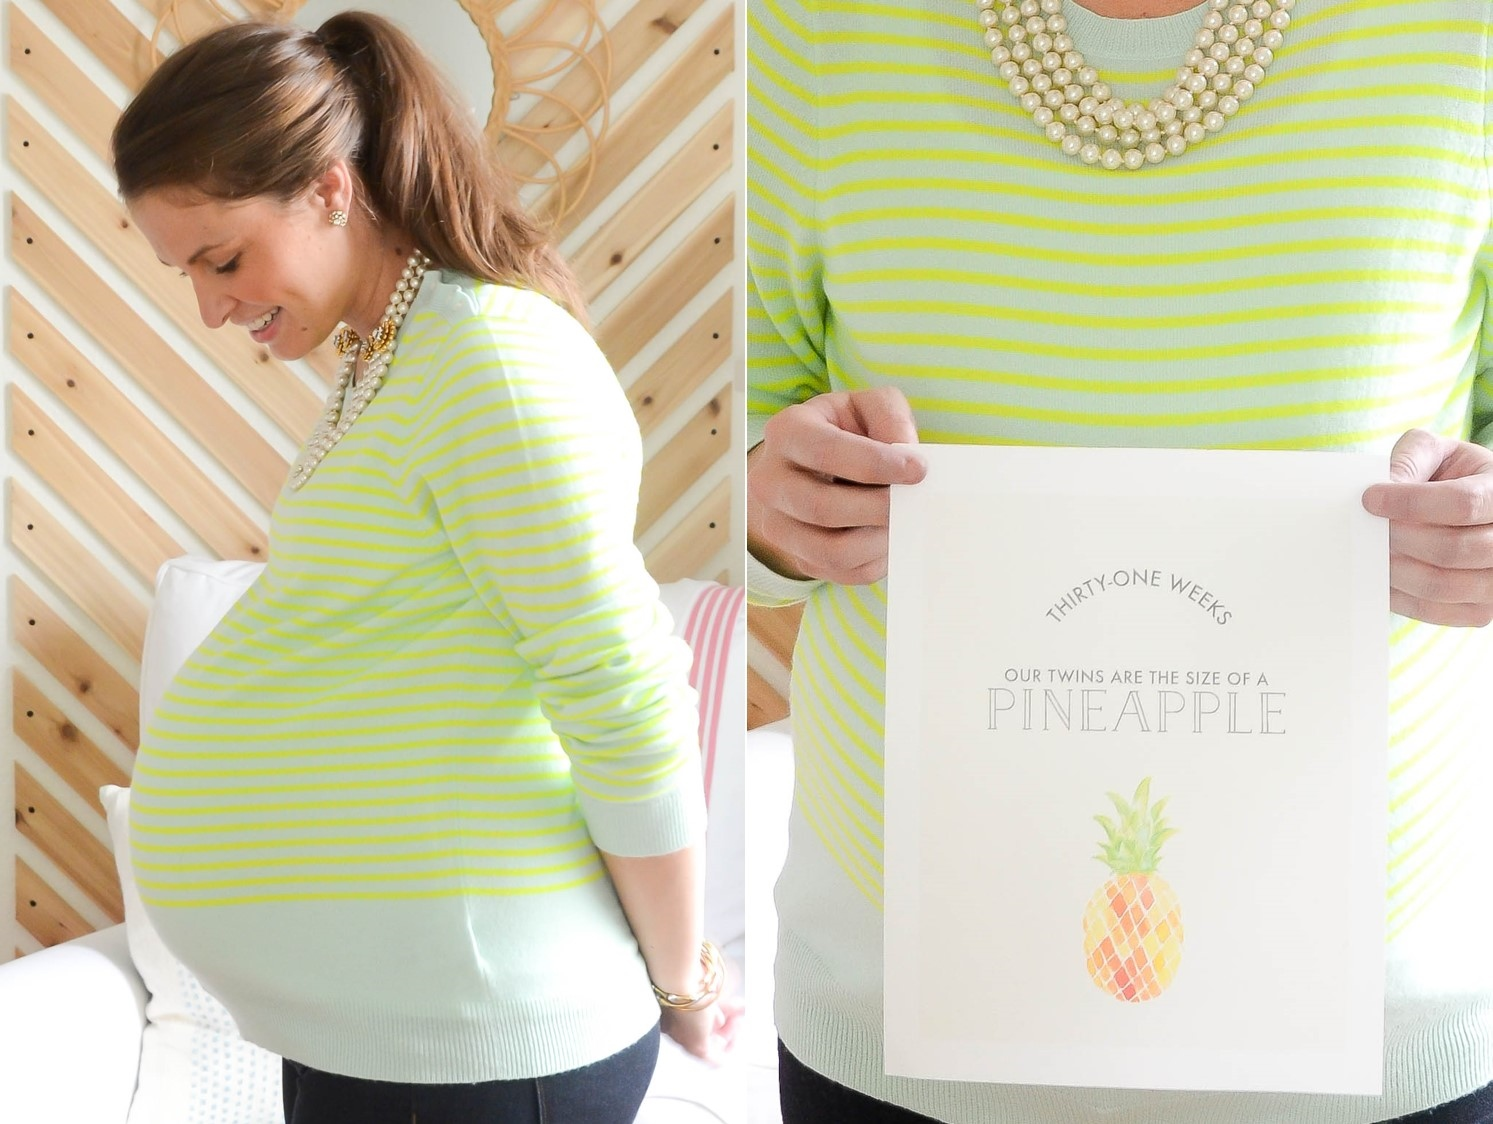 IRON & TWINE: 31 Weeks Pregnant